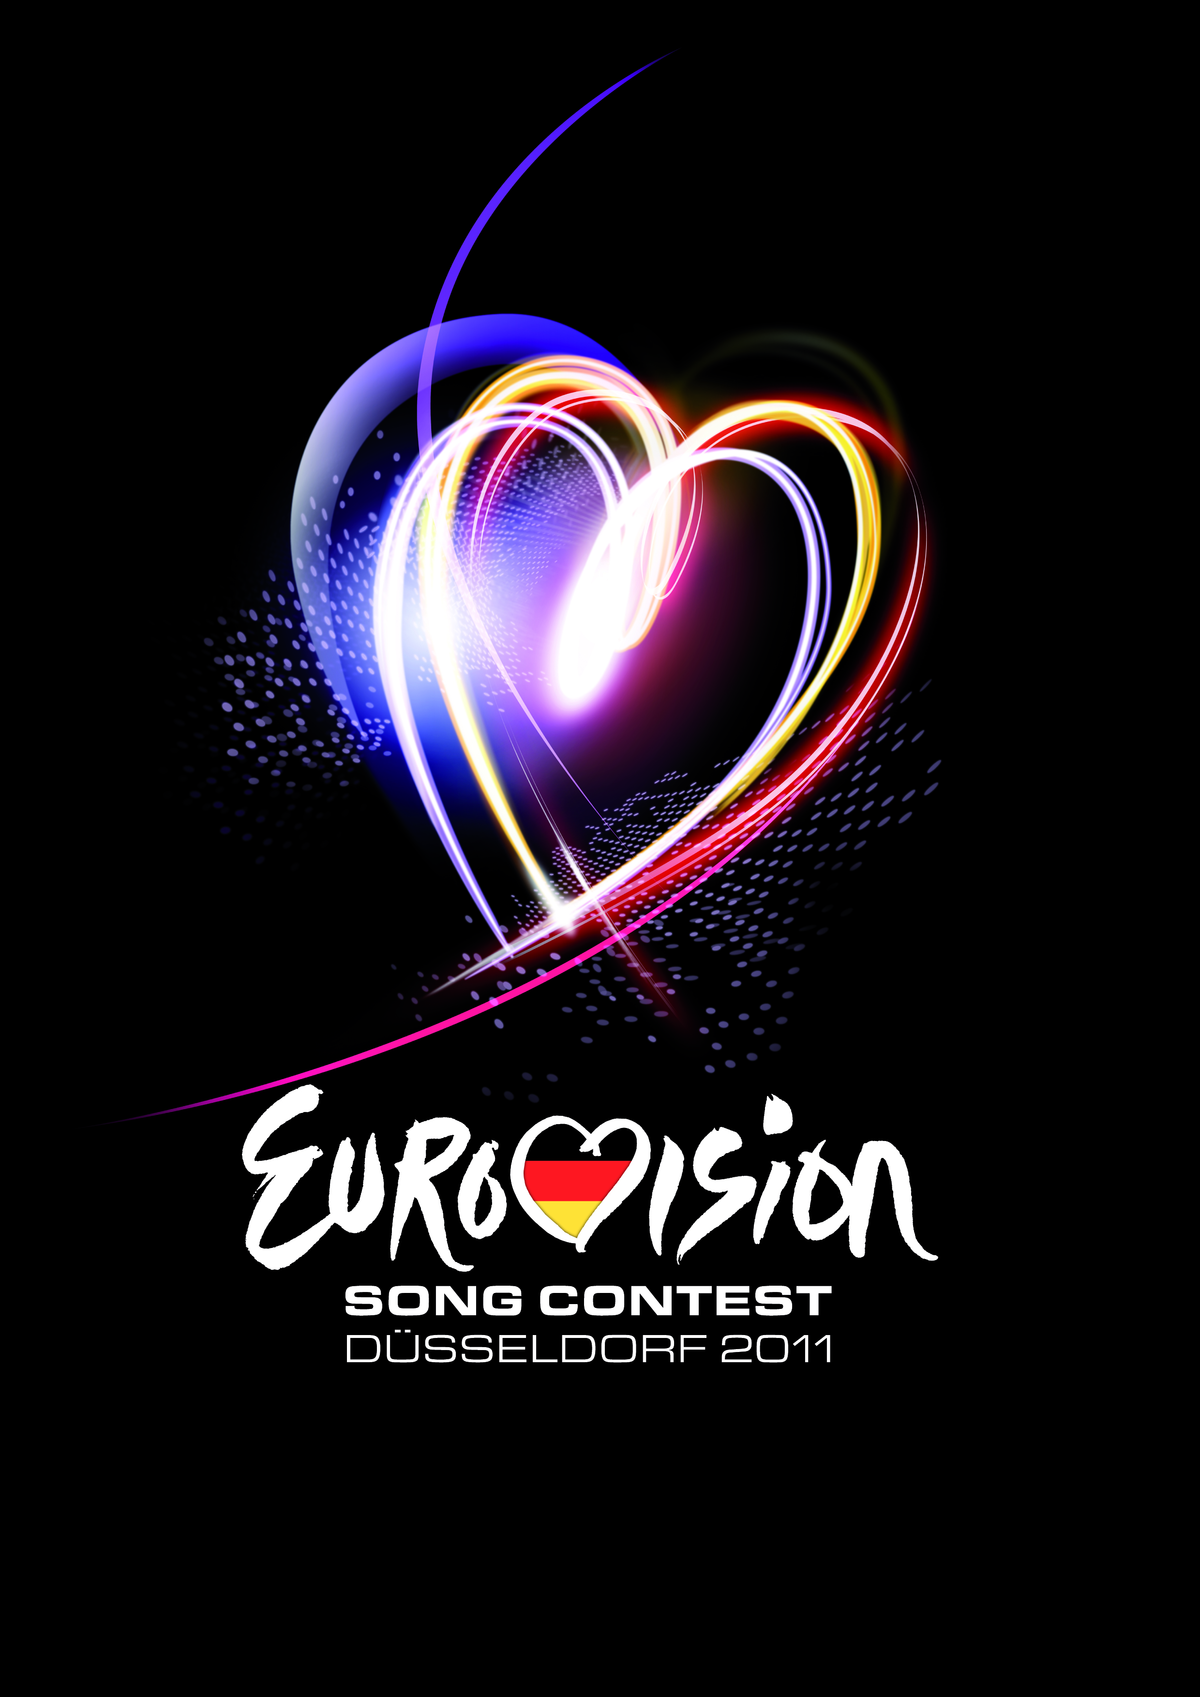 concours eurovision de la chanson 2011 wikip dia. Black Bedroom Furniture Sets. Home Design Ideas